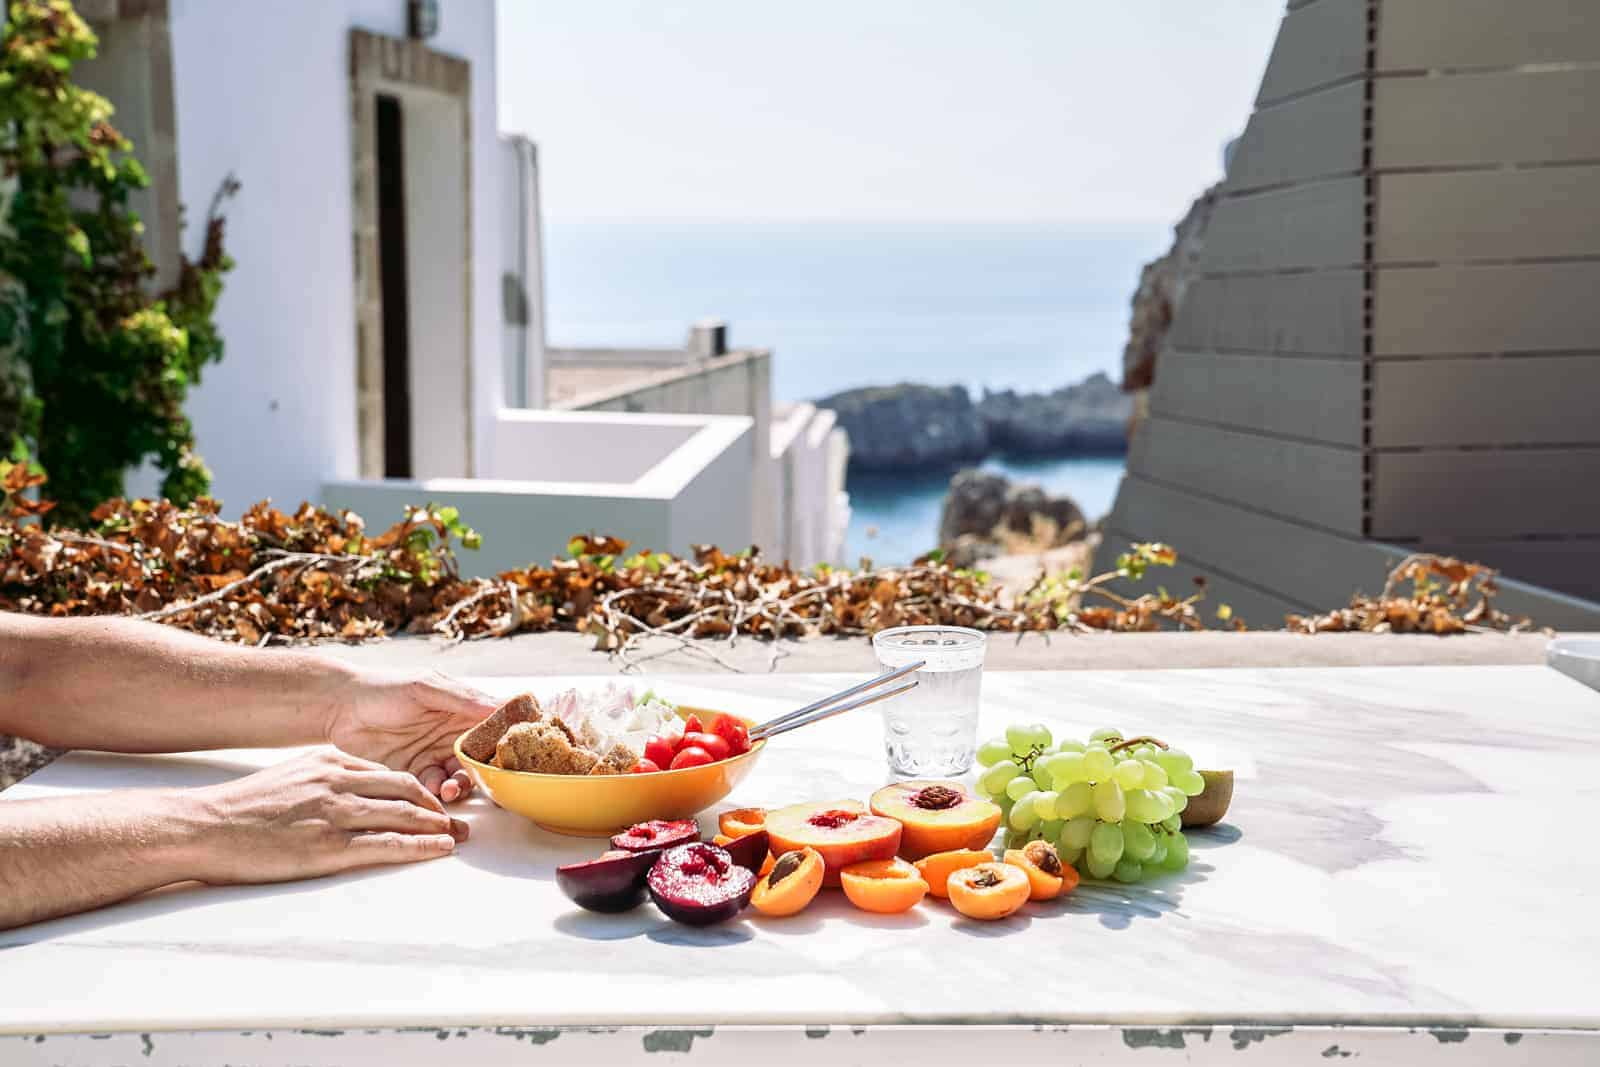 Healthy salad and fruit on a table overlooking Mykonos, Greece.